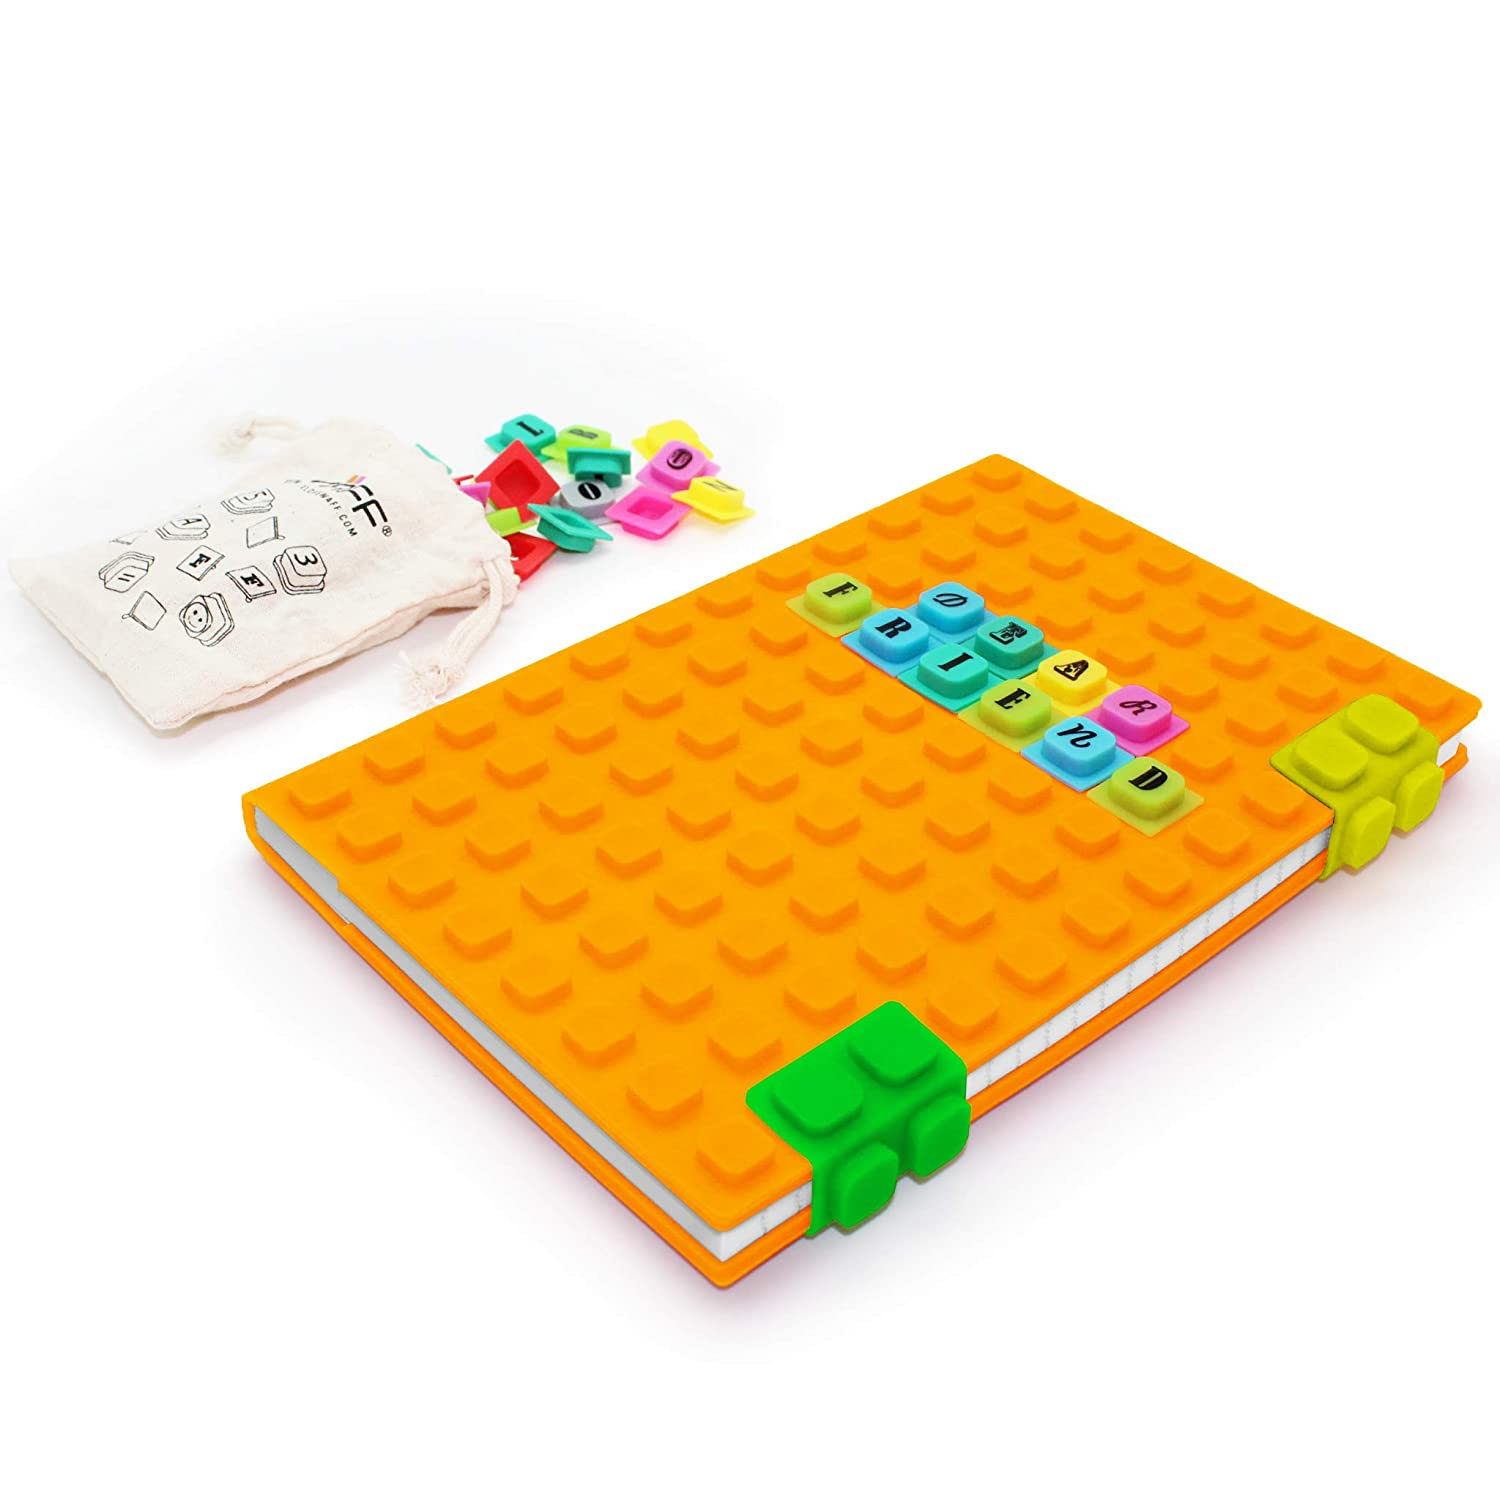 WAFF, Soft Silicone Cube Tiles And Notebook / Journal Combo, Large, 8.25